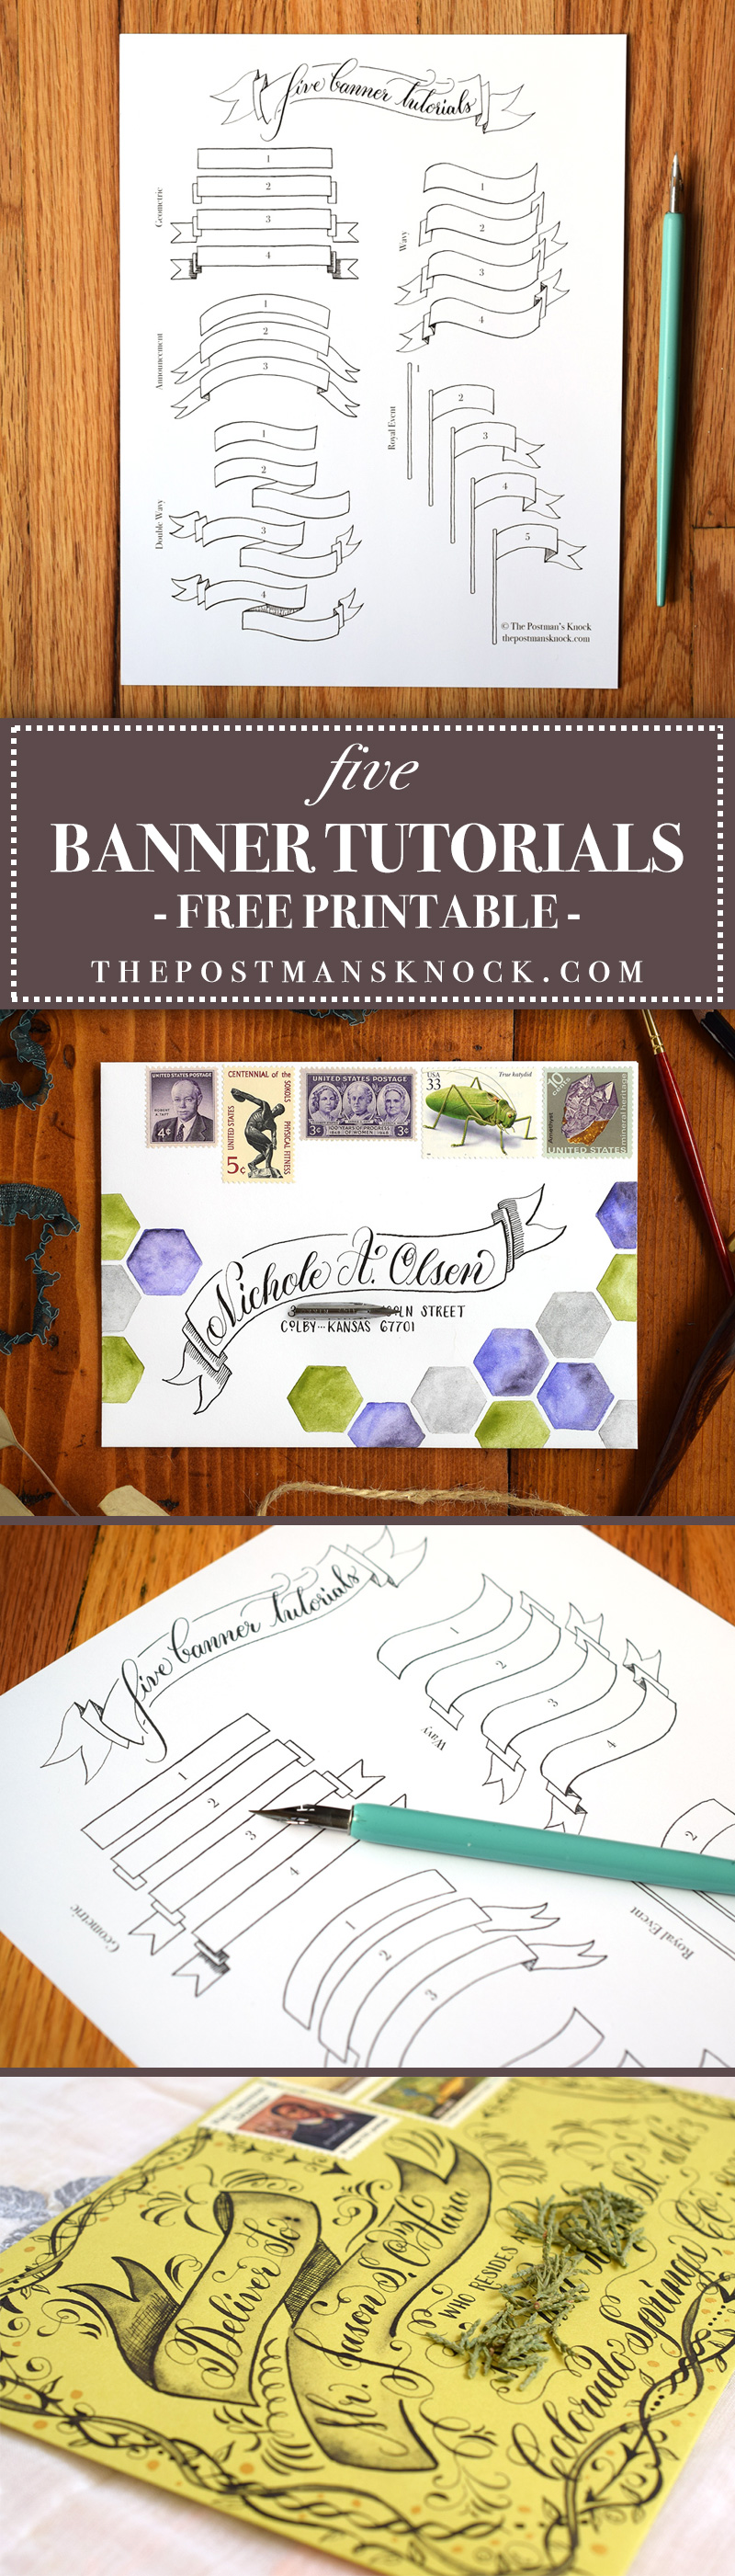 Five Banner Tutorials | The Postman's Knock